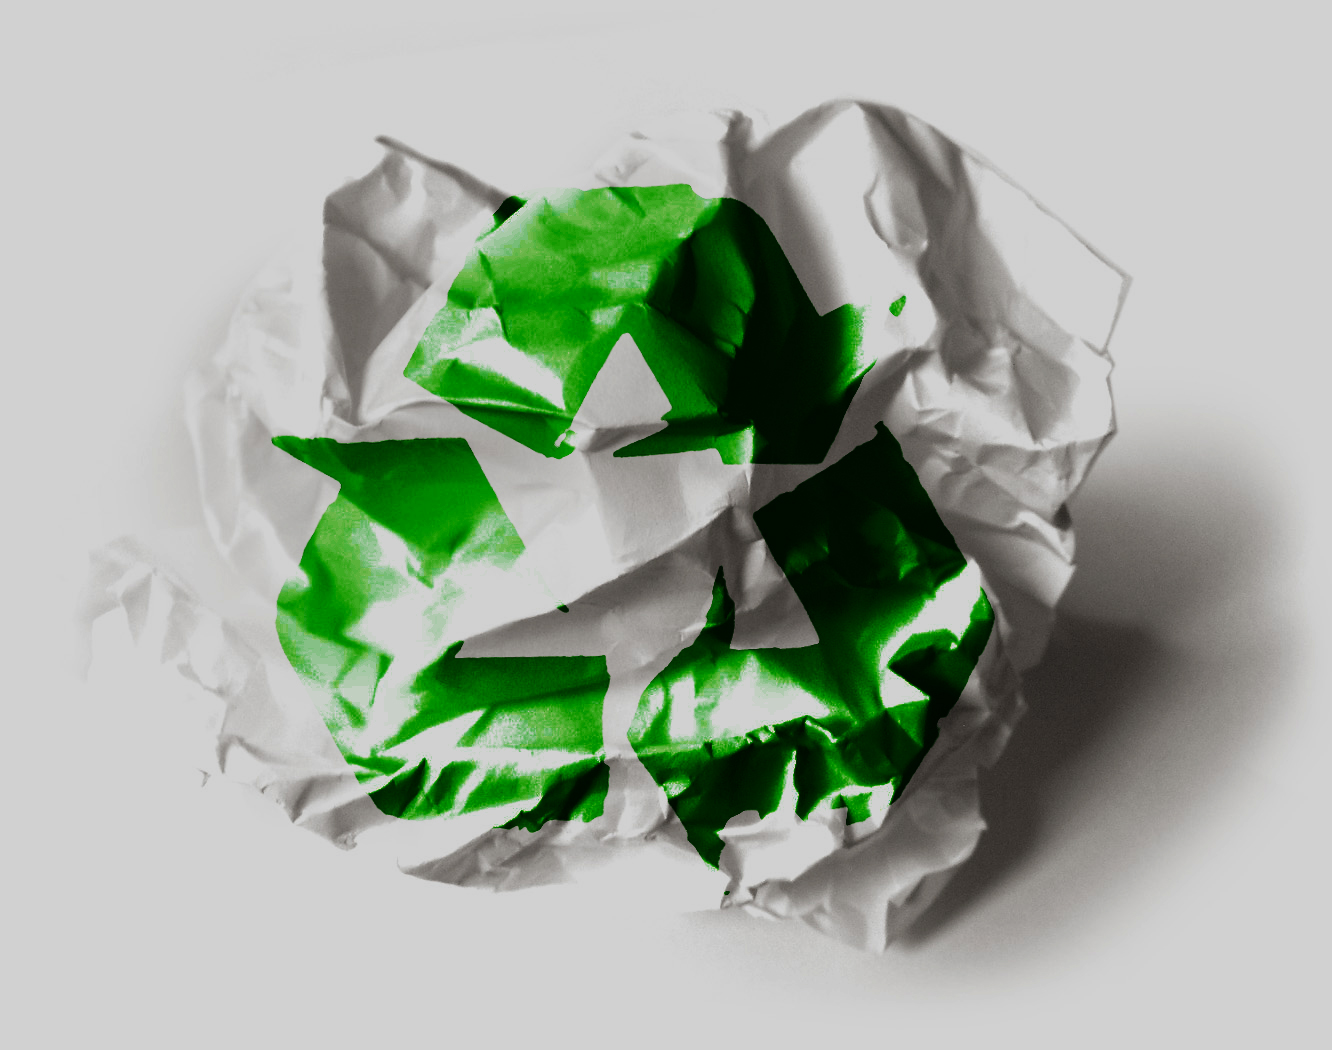 go paperless and recycle